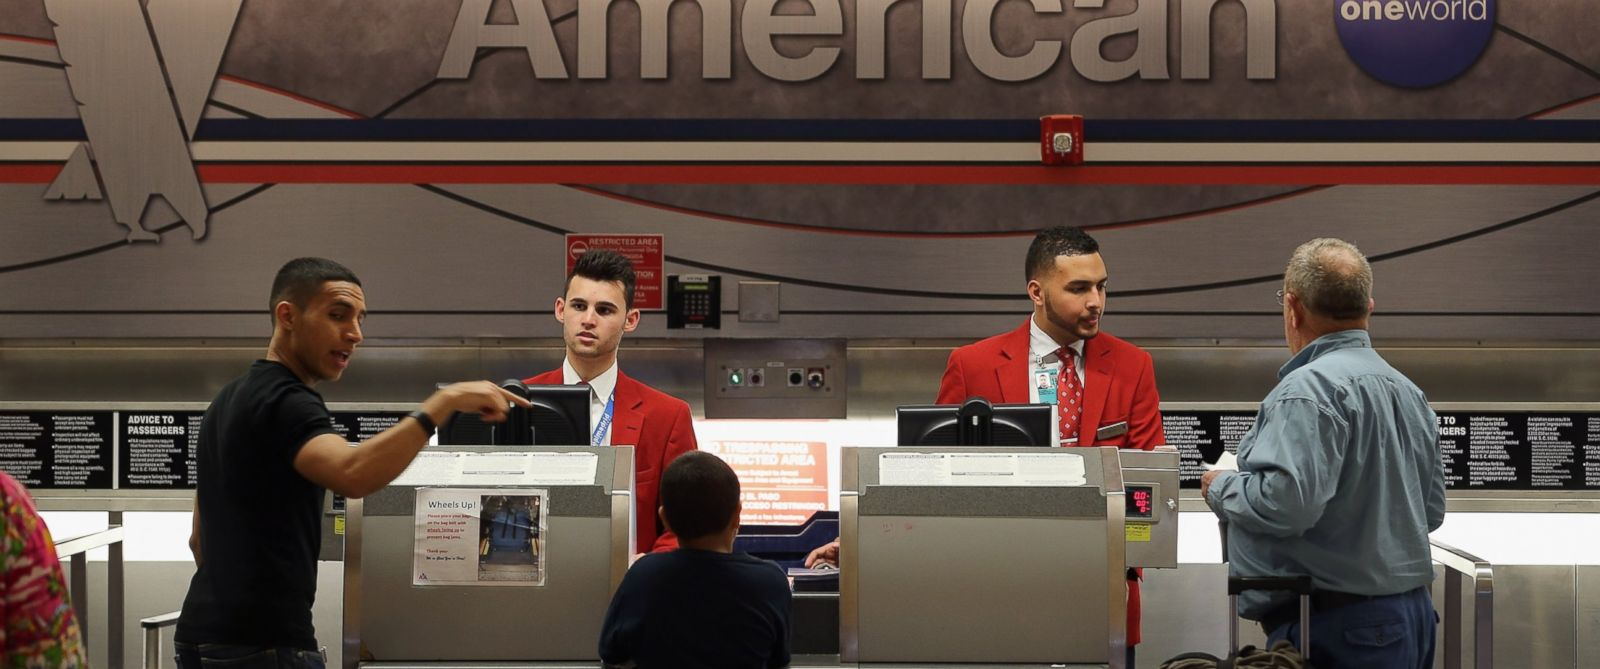 meet airline employees